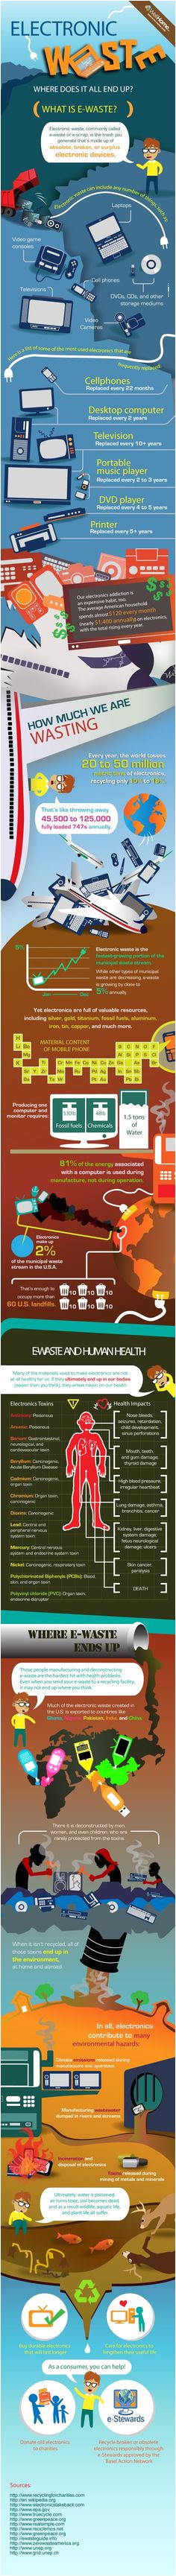 where do electronics go after they die infographic e waste recycling recycling facts